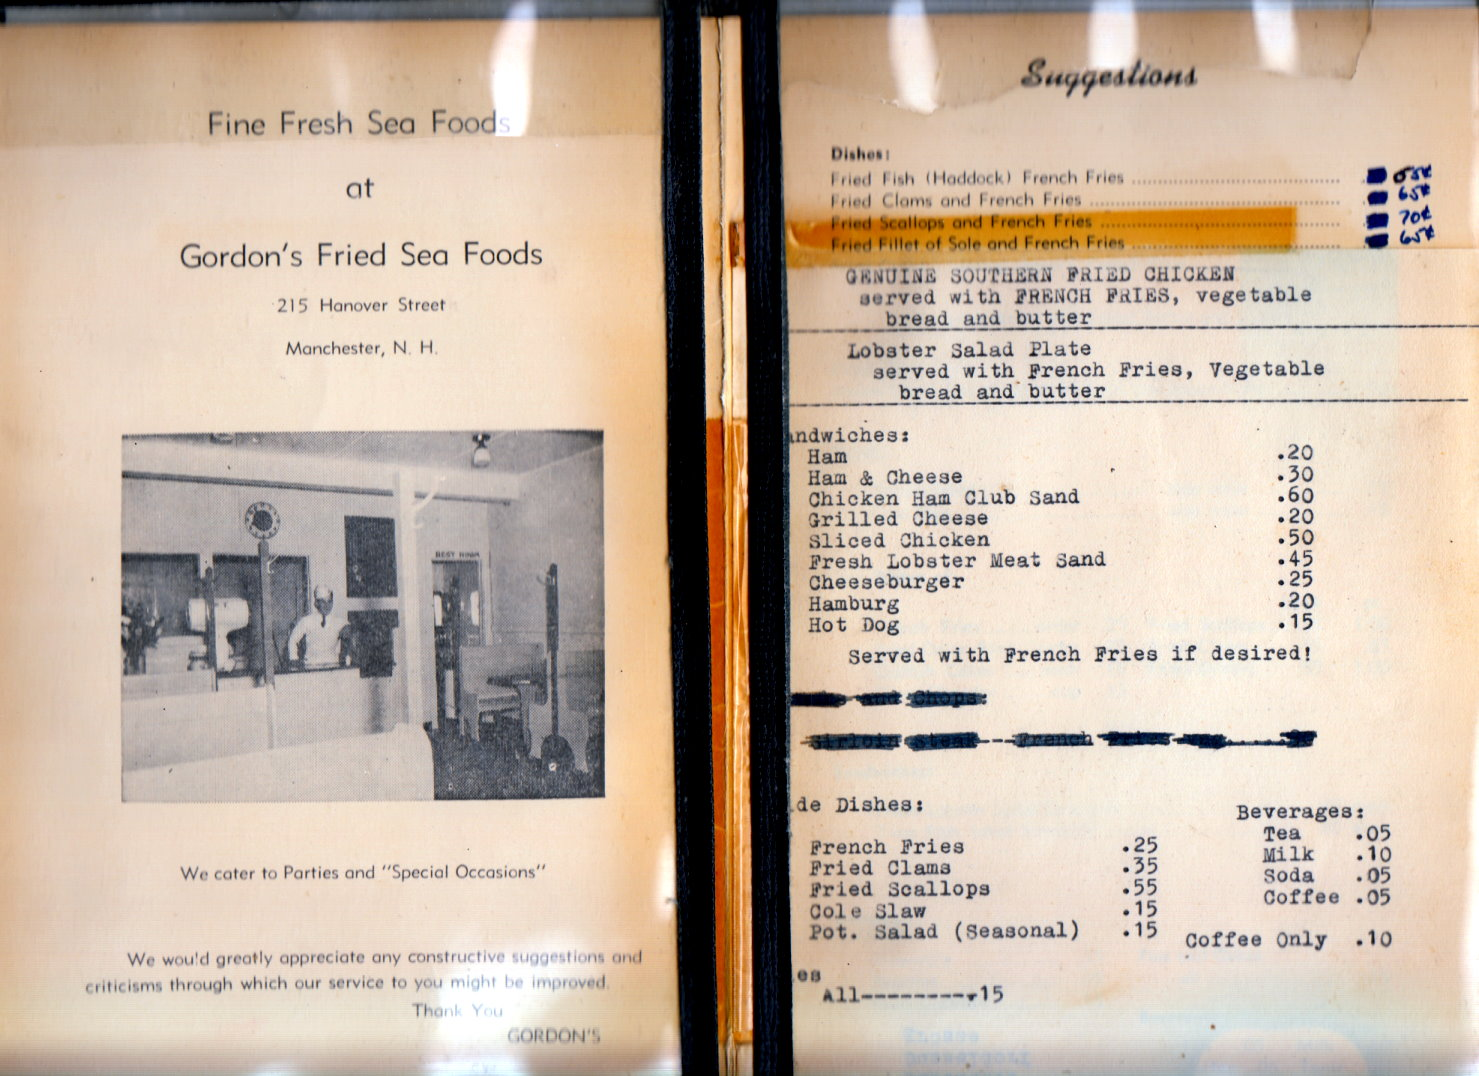 Inside of menu of Gordon's Fried Sea Foods